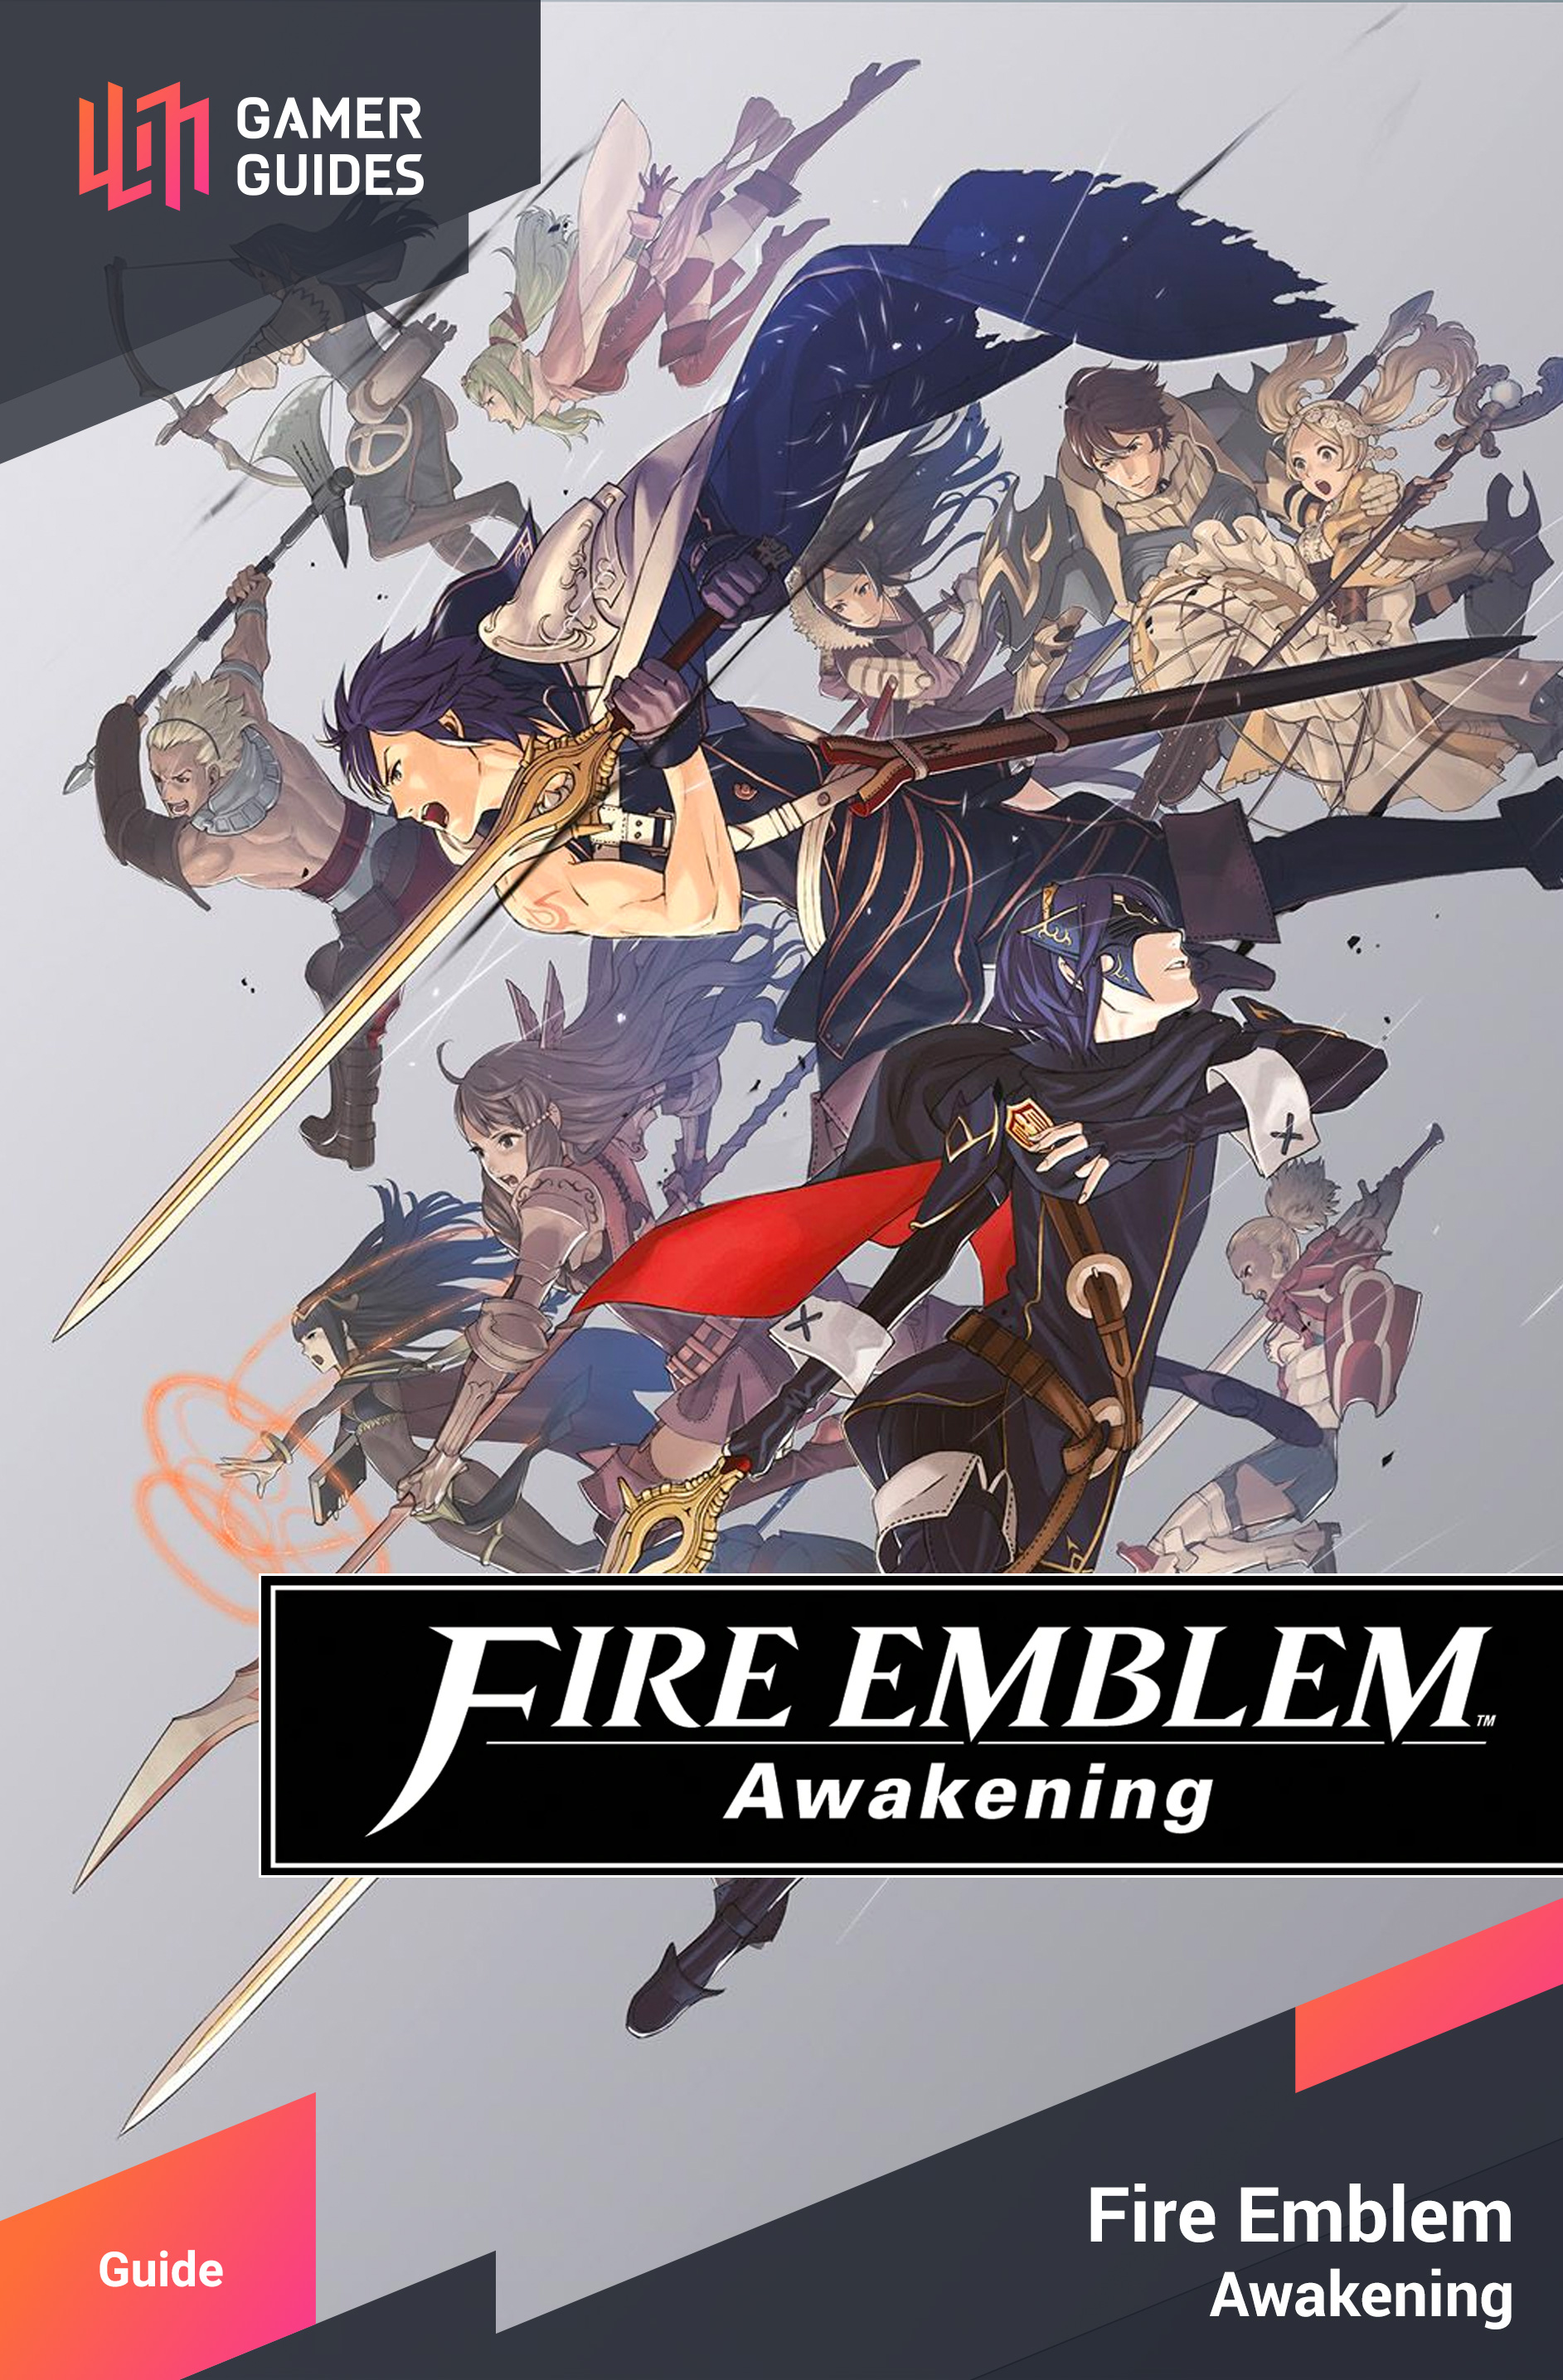 Fire Emblem: Awakening | Gamer Guides